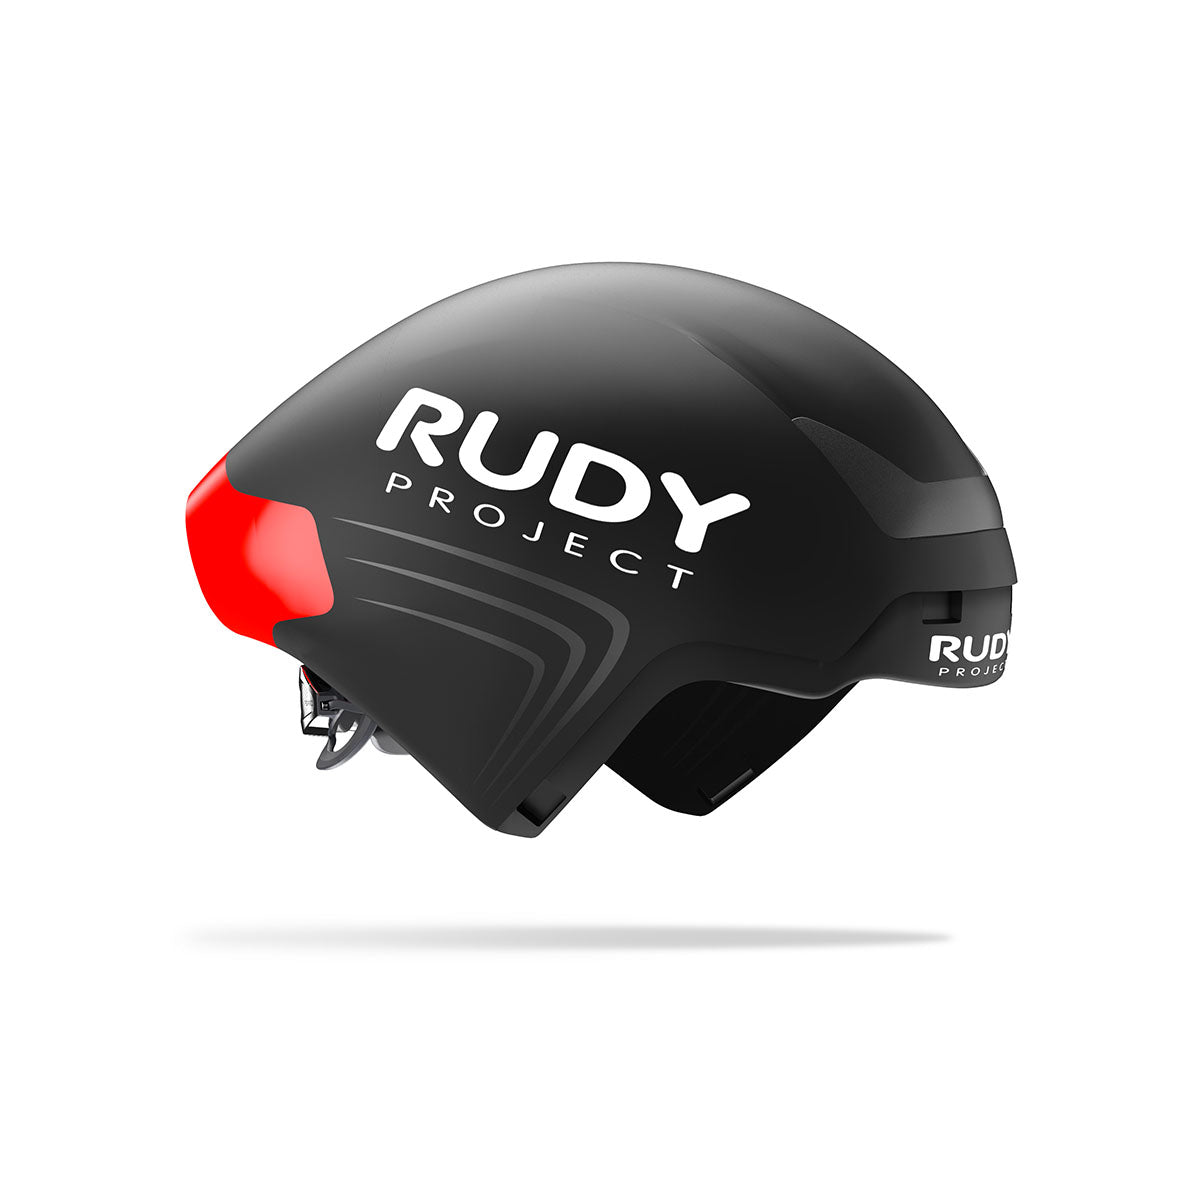 Rudy Project - The Wing - color: Black - photo angle: Side Without Visor Variant Hover Image